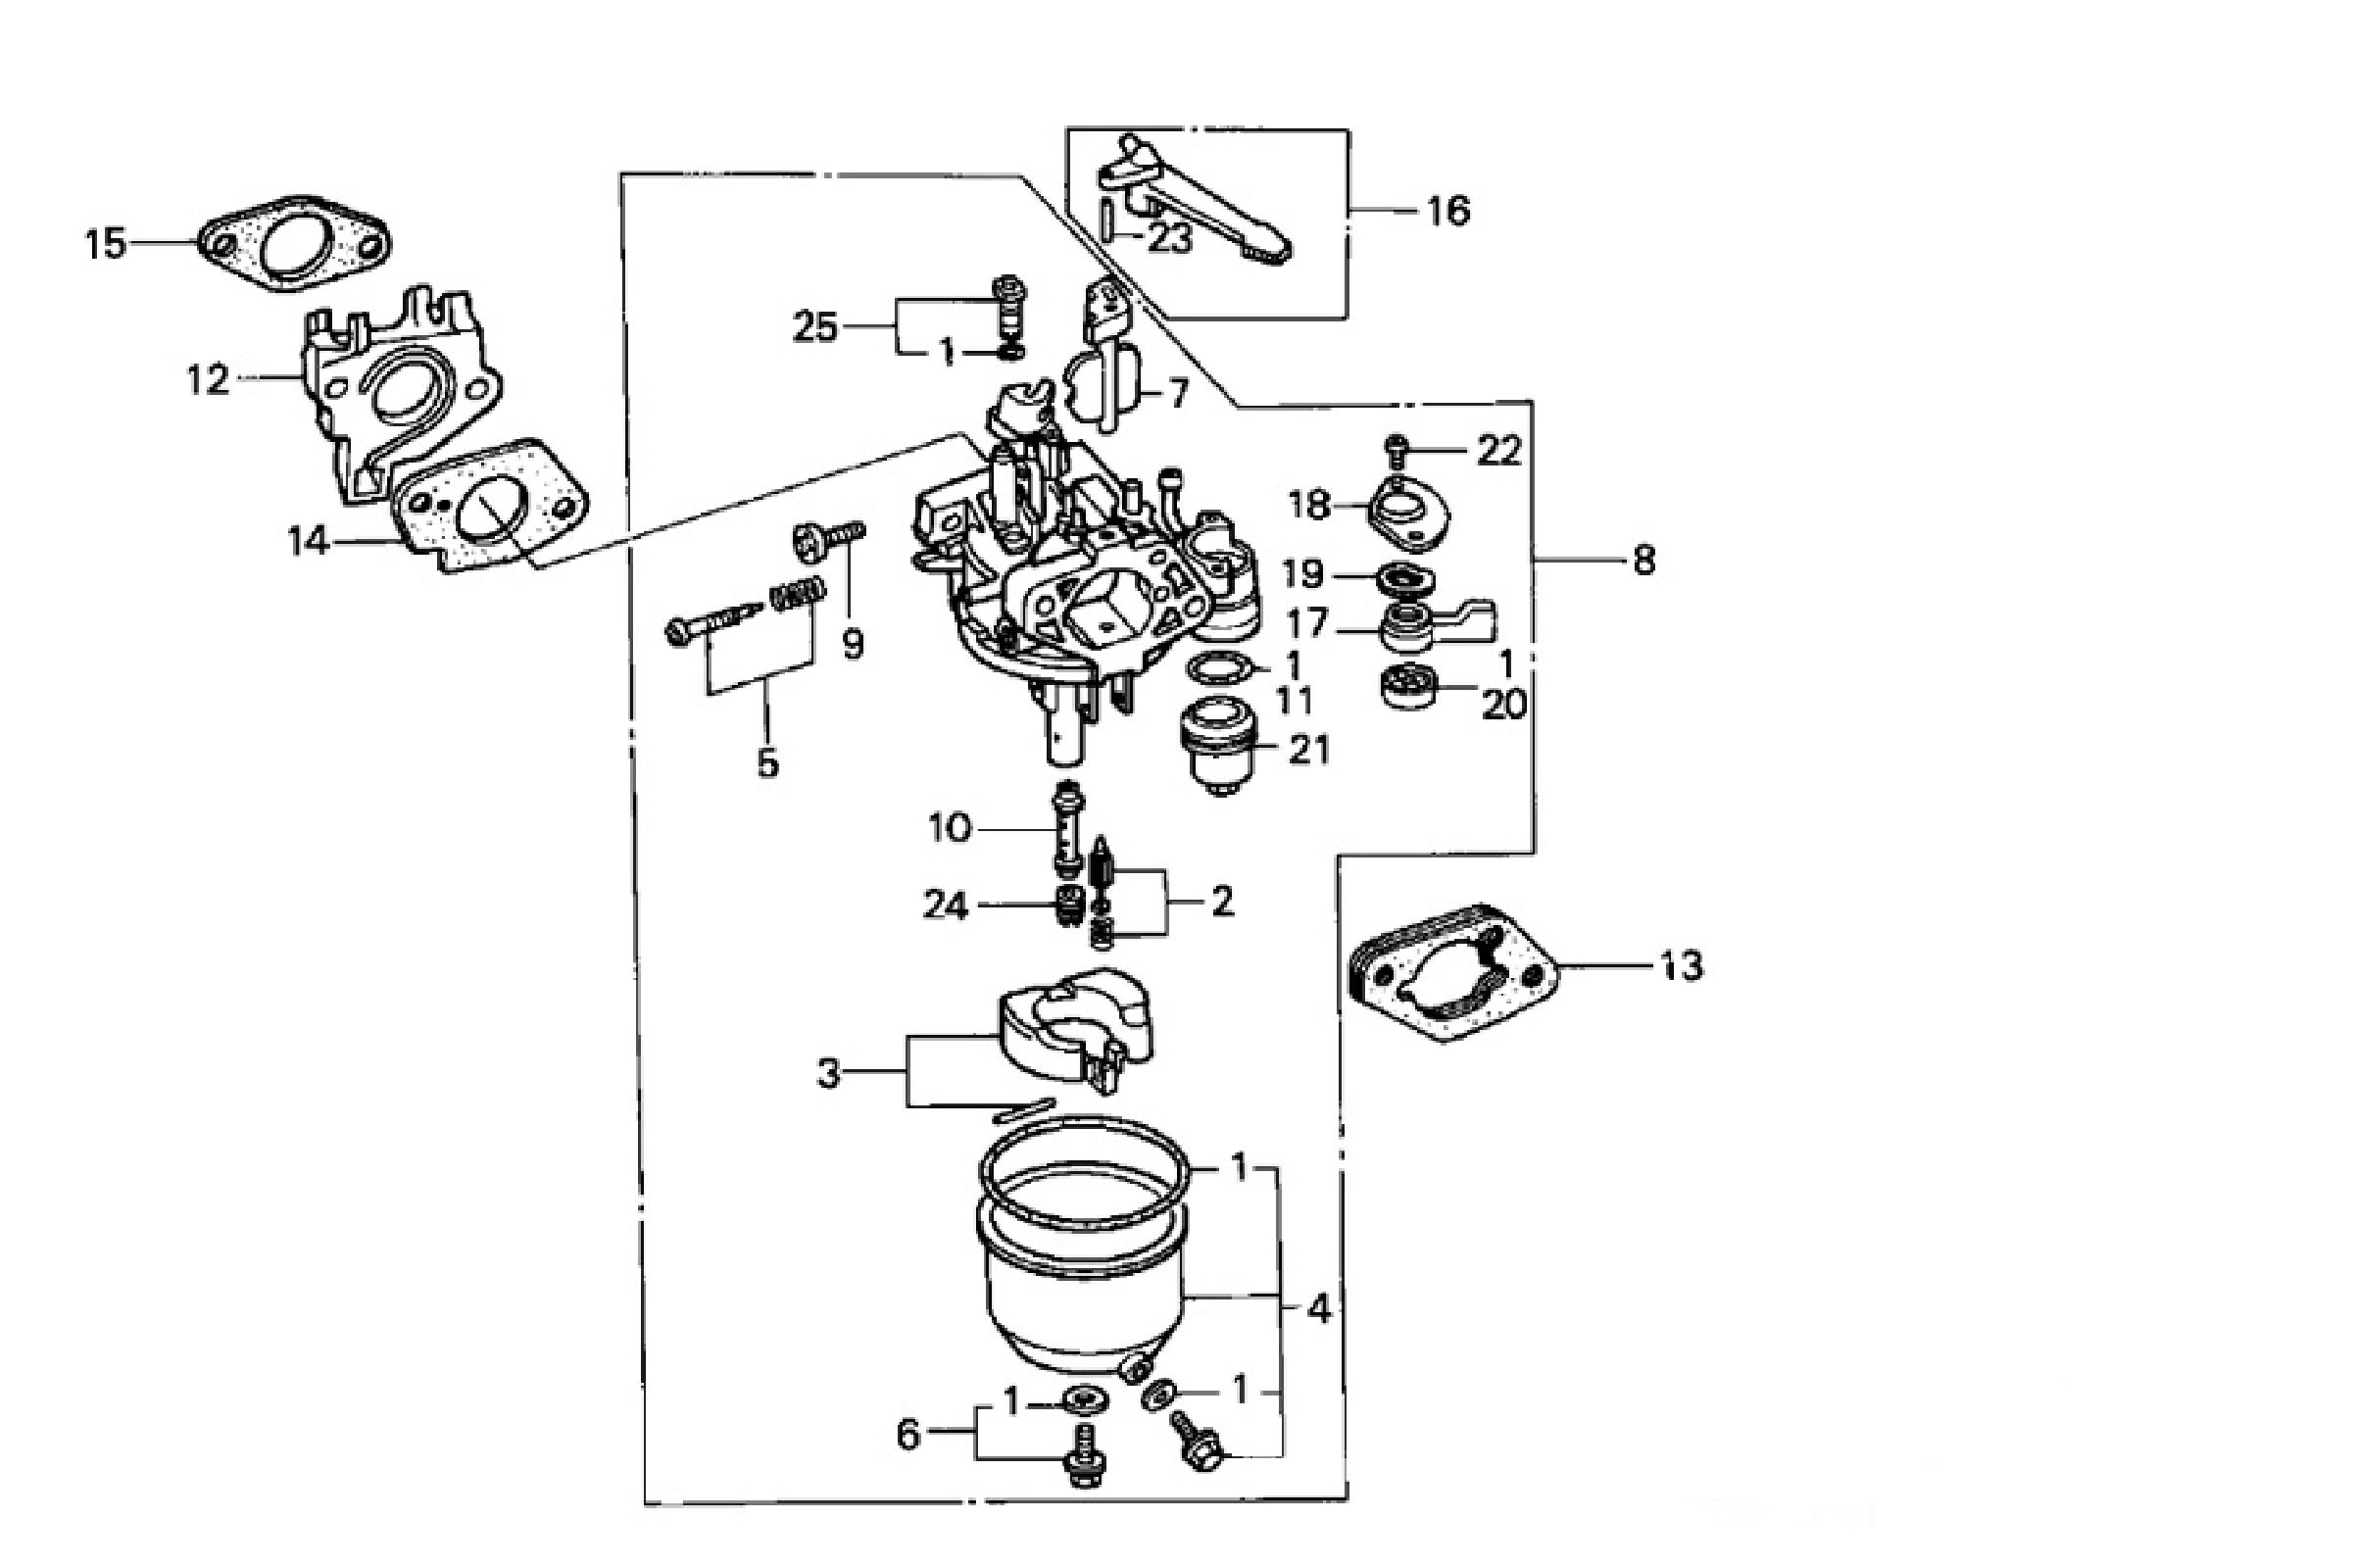 carburetor system rh provenpart com honda pressure washer carburetor parts honda gcv160 pressure washer carburetor diagram